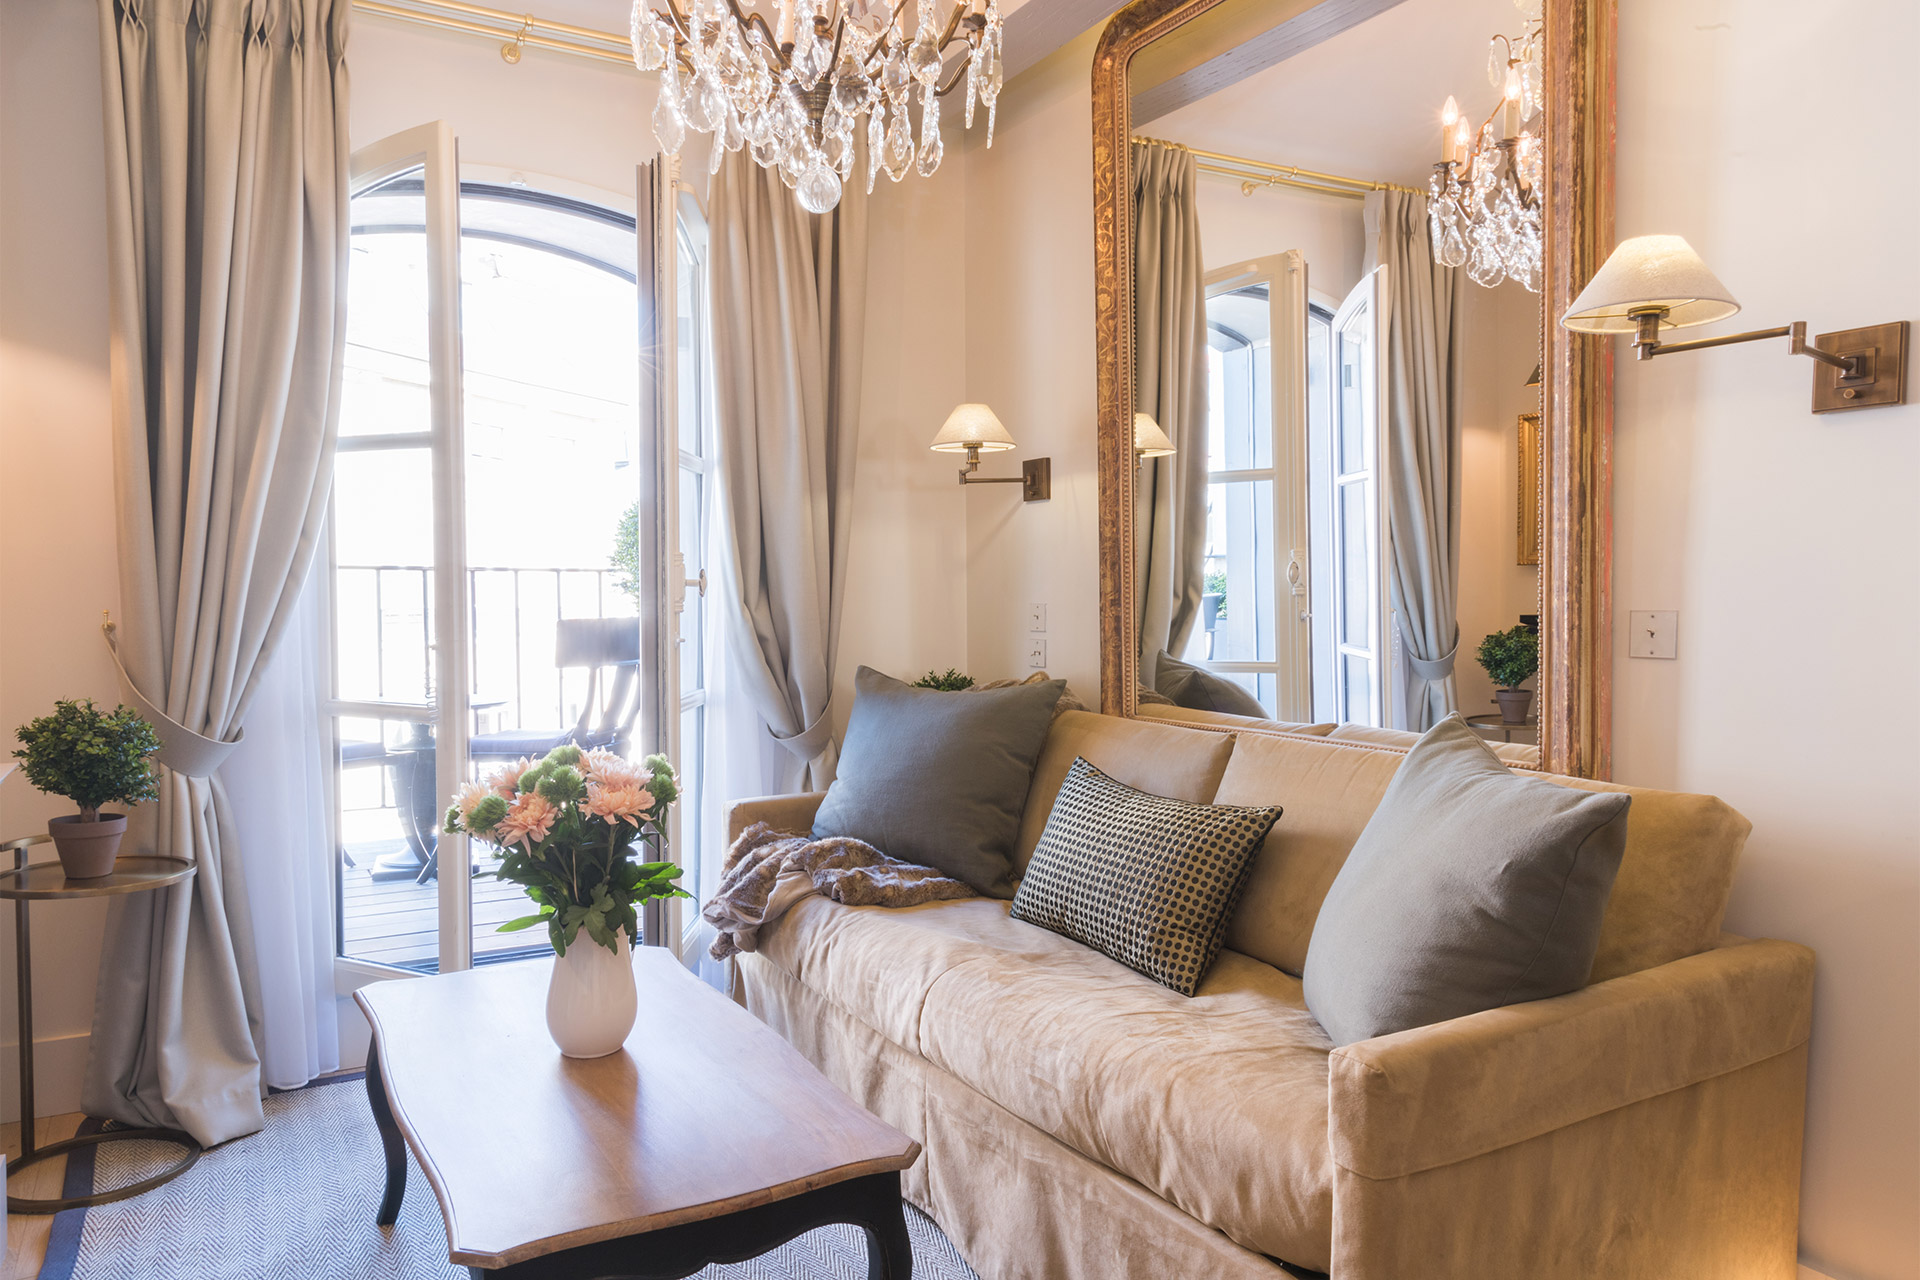 Inviting sofa in the living room of the Monbazillac vacation rental offered by Paris Perfect